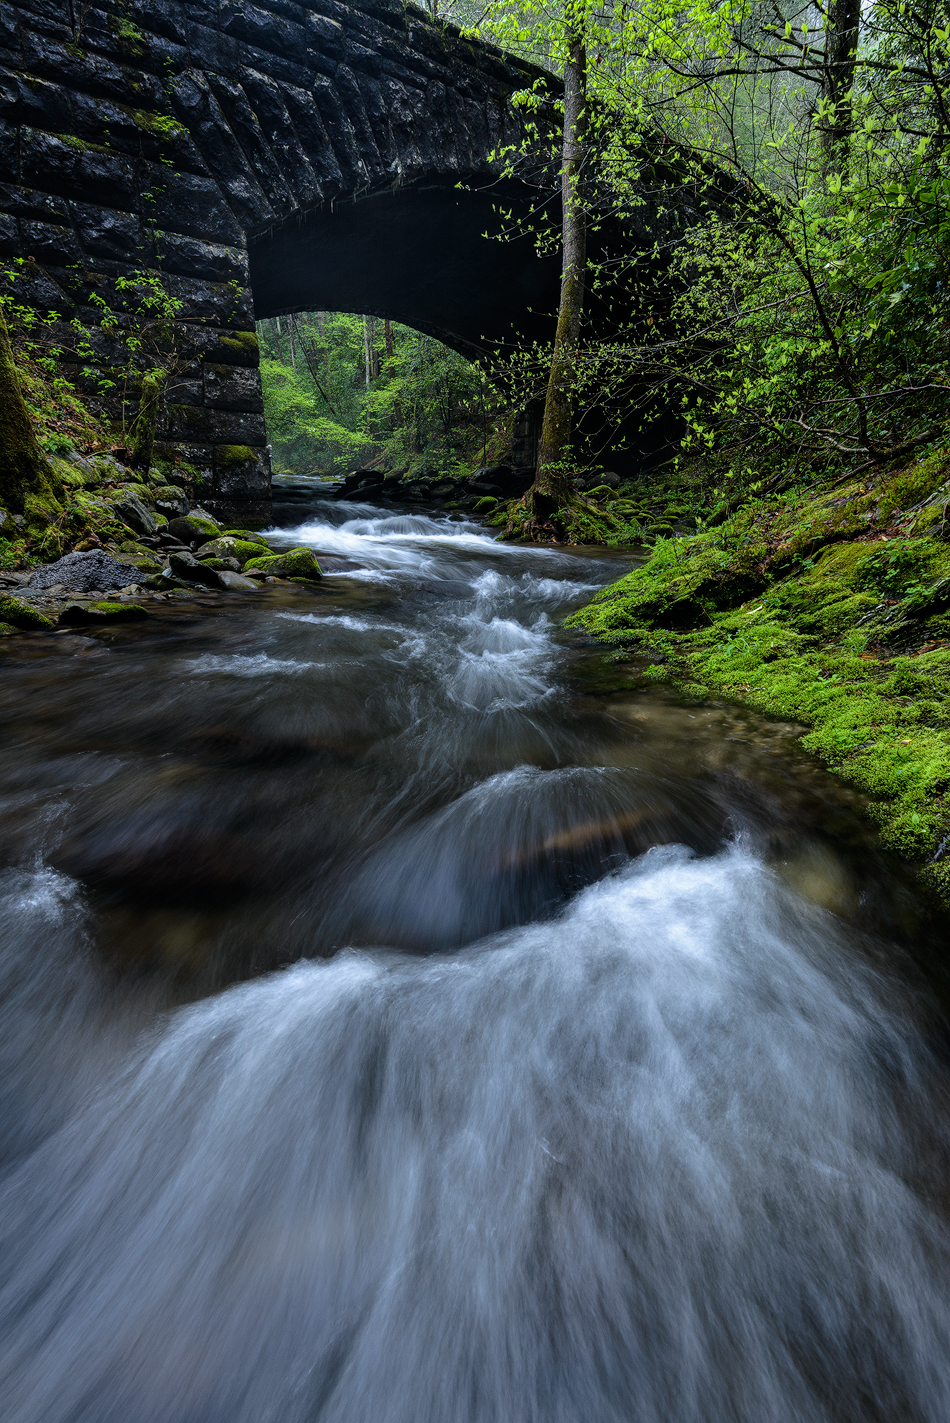 under-the-bridge-great-smoky-mountains.jpg